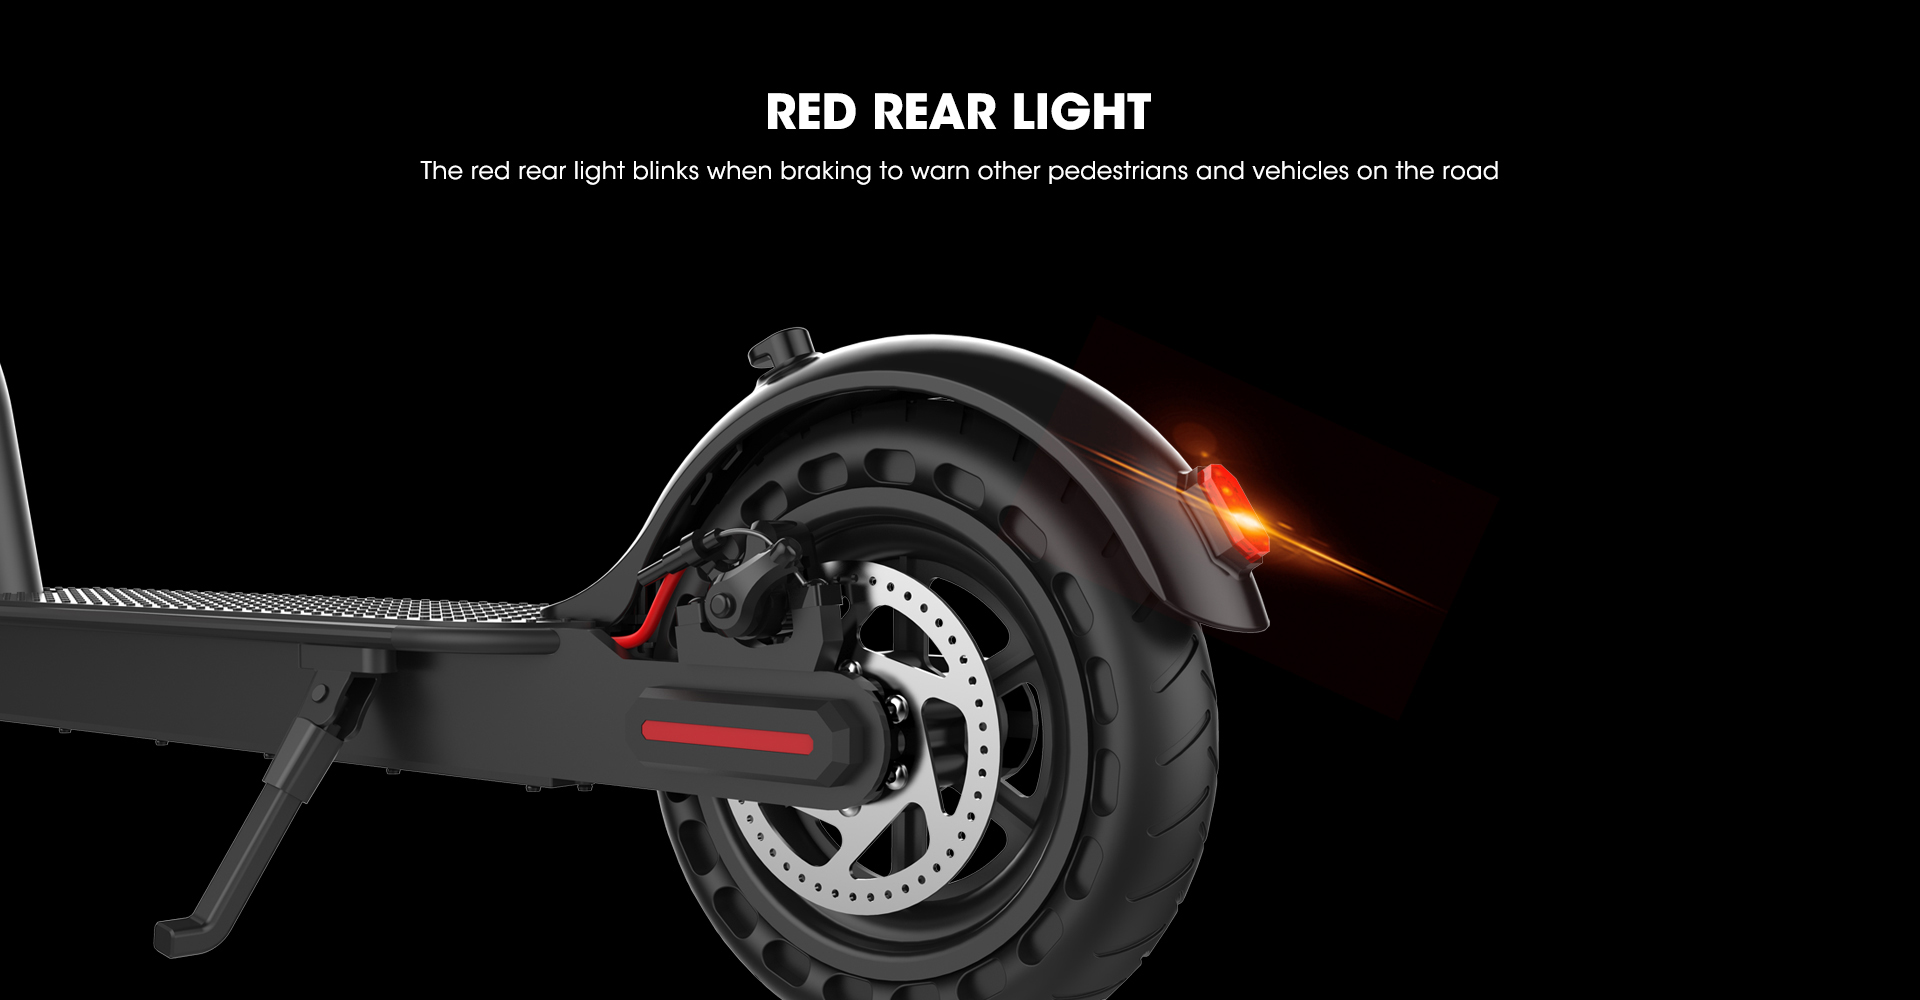 foldable-electric-scooter-red-rear-light